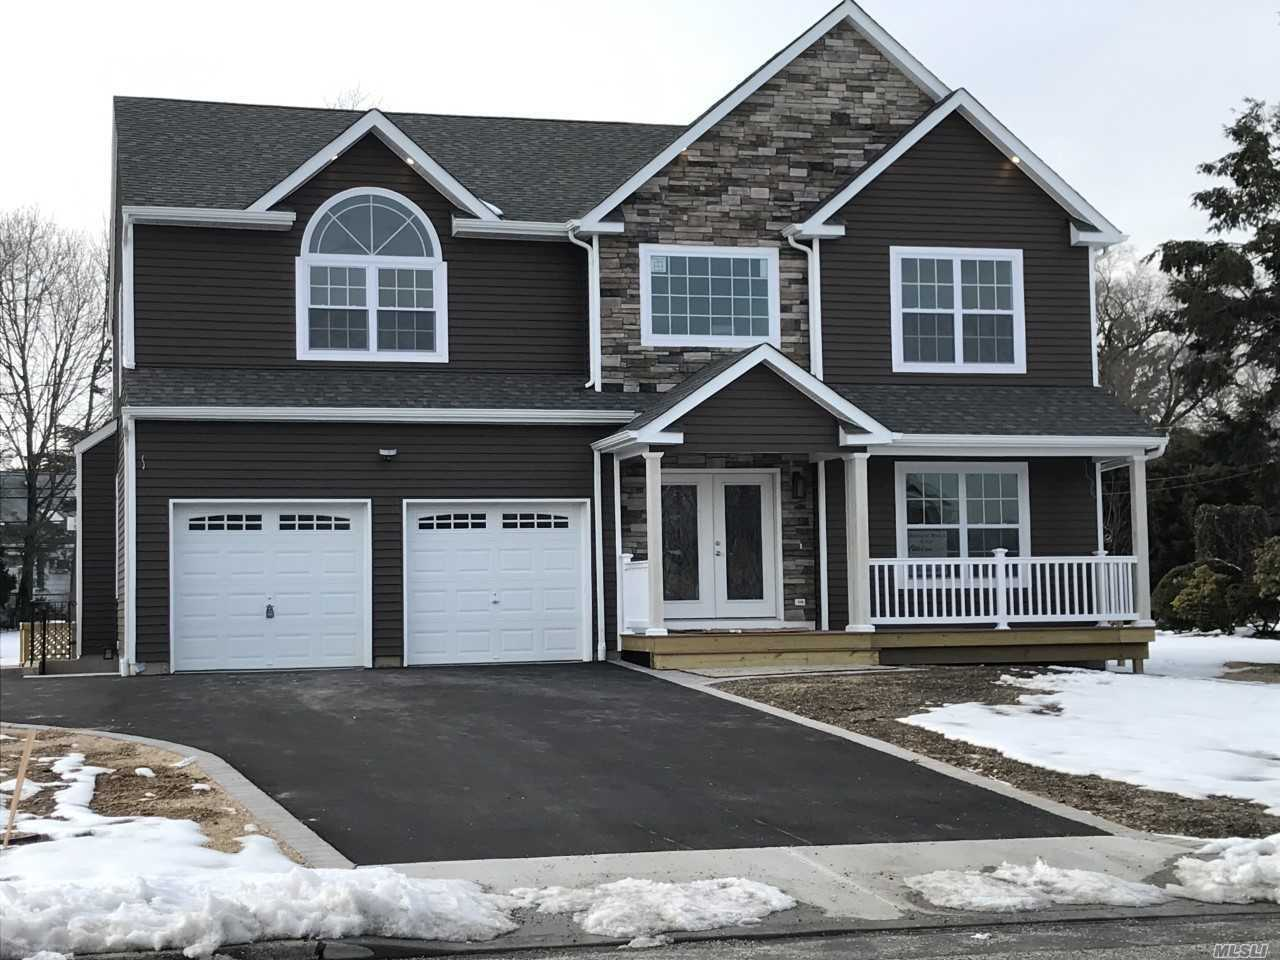 To Be Built 5 Bedroomcolonial On 3/4Acre Parcel-Custom Kitchen/Granite Countertops/Stainless Steel Appliances, Oak Flrs, 2 Zone Central Air, Fireplace, Great Room, Molding Package, Hi Hats, Architectual Roof, Vinyl Siding, 200 Amp Electrical Ser, Cedar Impression Siding Front, Still Time To Customize